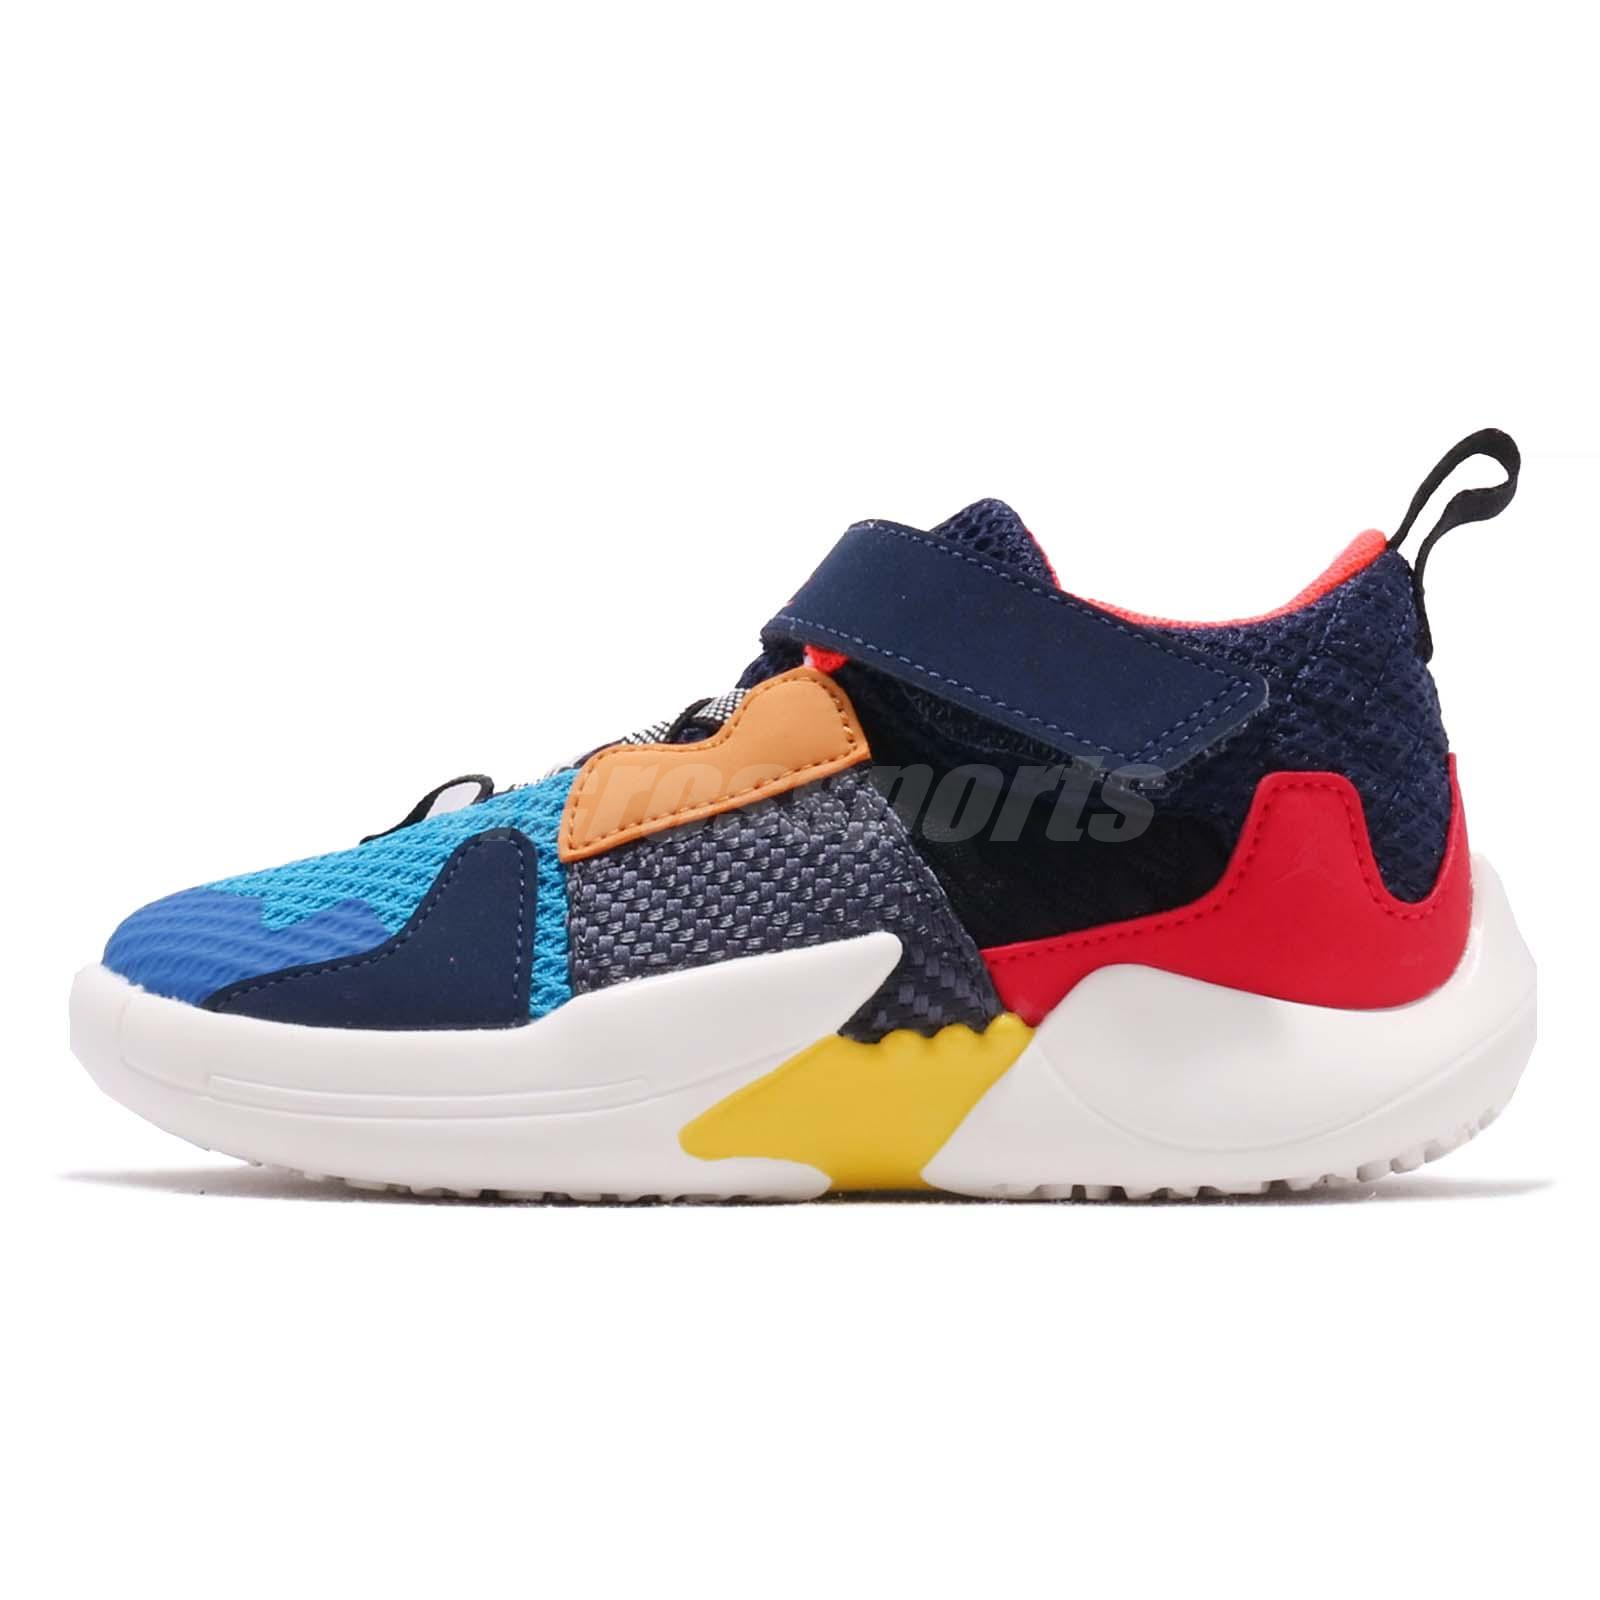 724e65d988263f Nike Jordan Why Not Zer0.2 TD Russell Westbrook Toddler Infant Shoes  AT5720-900